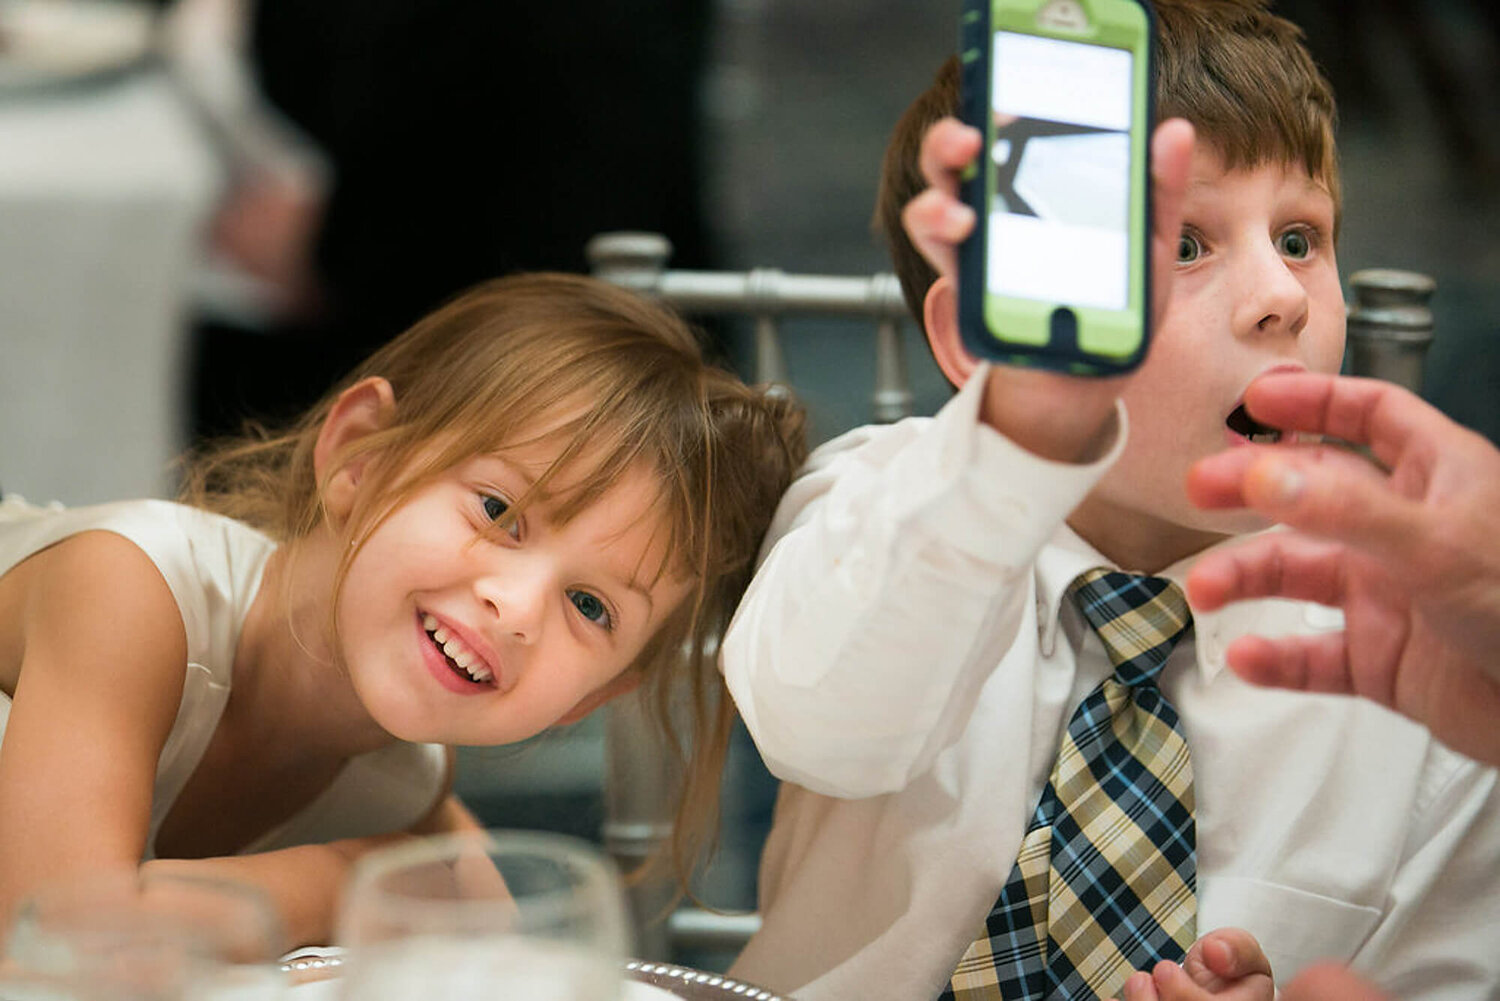 40-st-louis-kids-wedding-reception-cell-phone.jpg